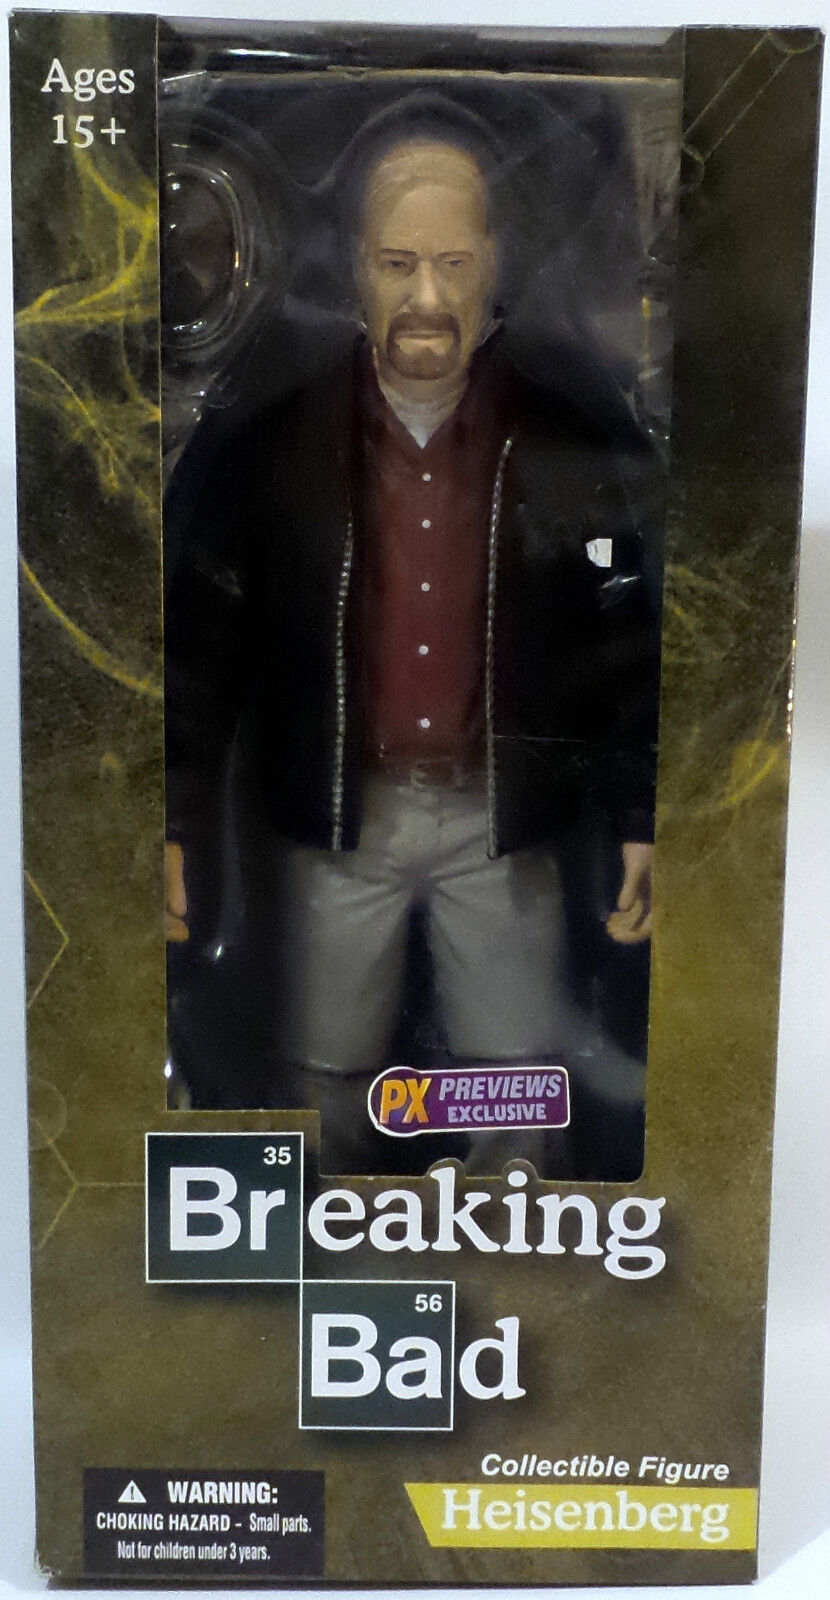 BREAKING BAD : HEISENBERG COLLECTIBLE FIGURE MADE BY MEZCO TOYS IN 2014 (TK)